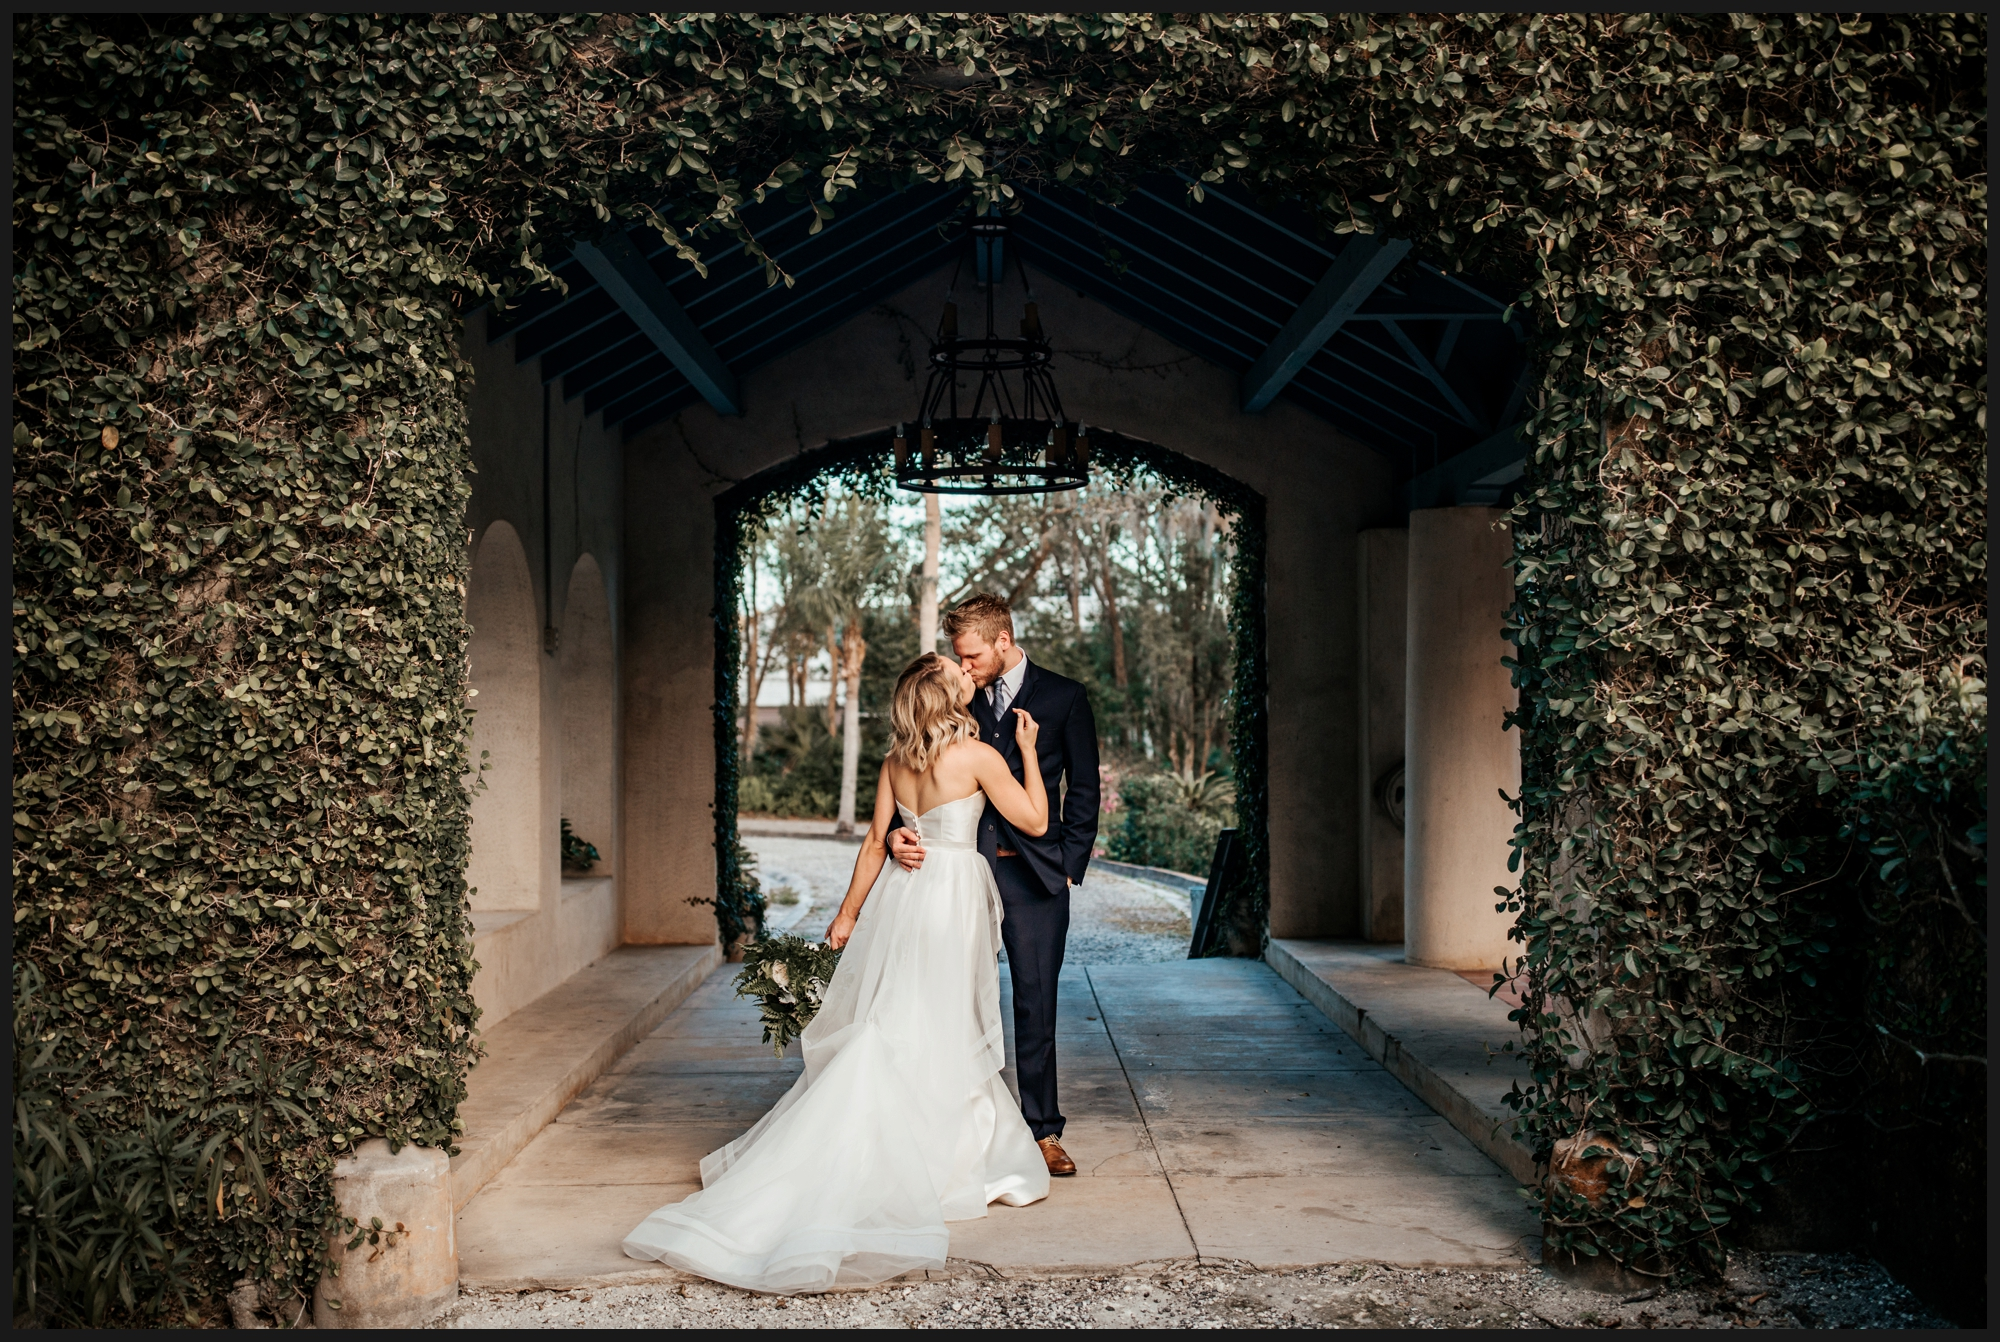 Orlando-Wedding-Photographer-destination-wedding-photographer-florida-wedding-photographer-bohemian-wedding-photographer_1525.jpg